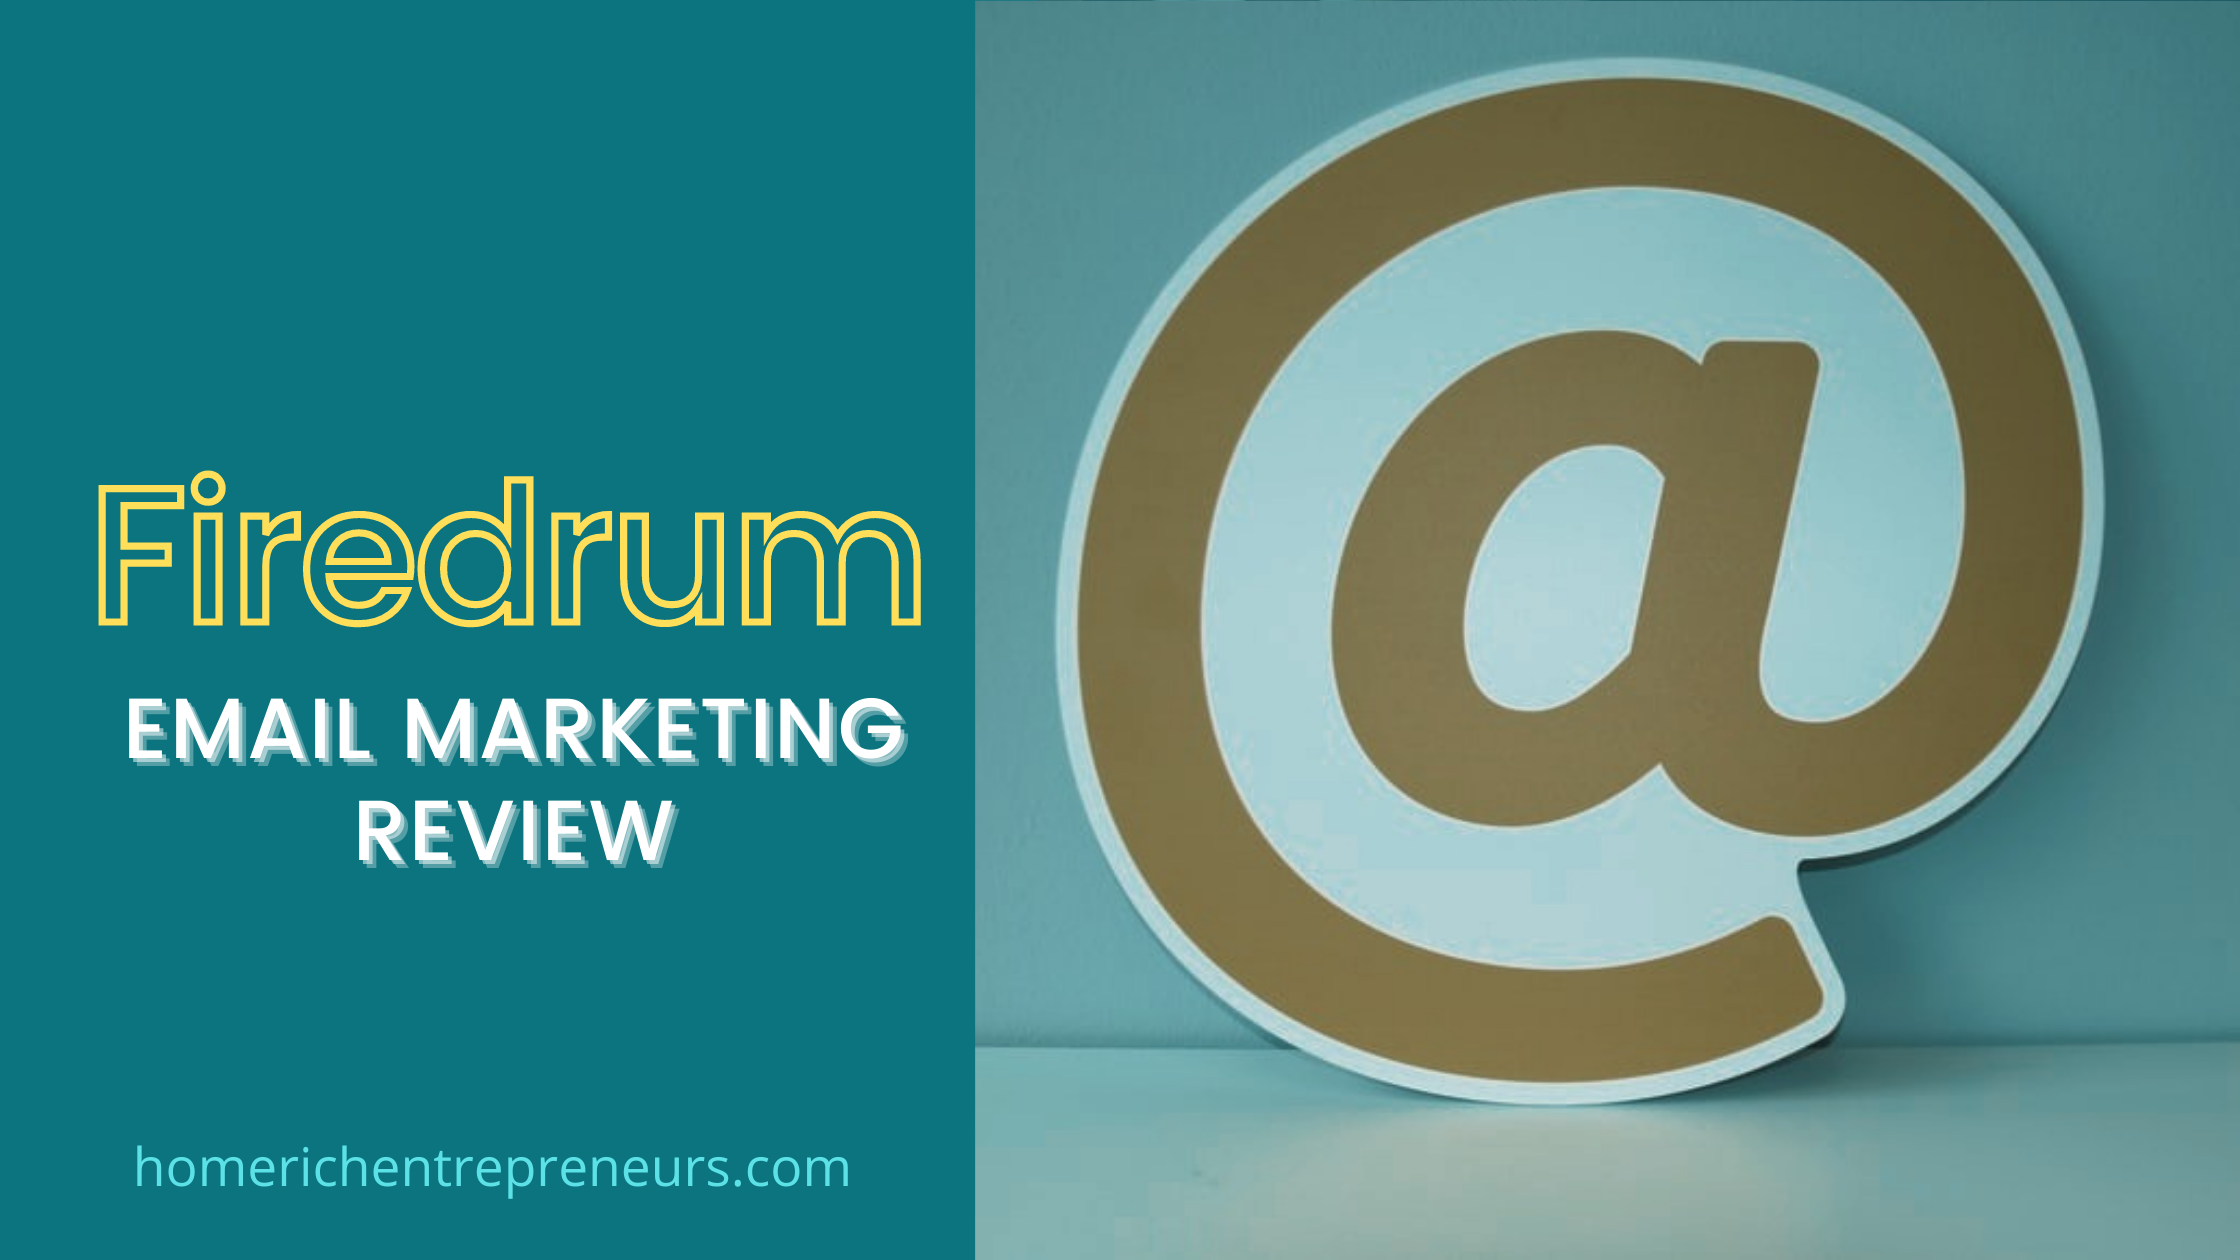 What is Firedrum Email Marketing